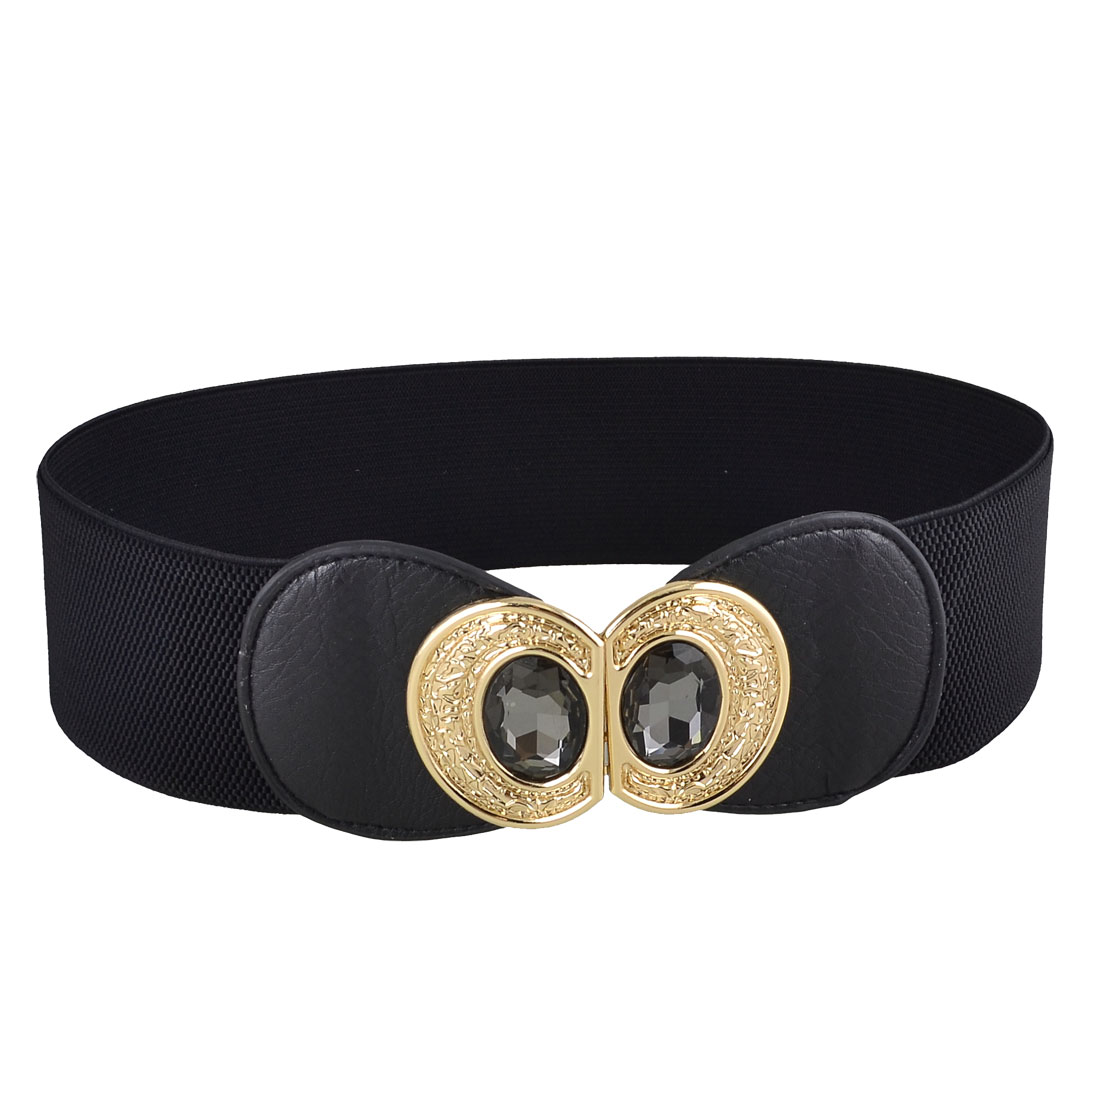 Ladies 8 Shaped Metal Interlock Buckle Textured Elastic Waist Belt Black